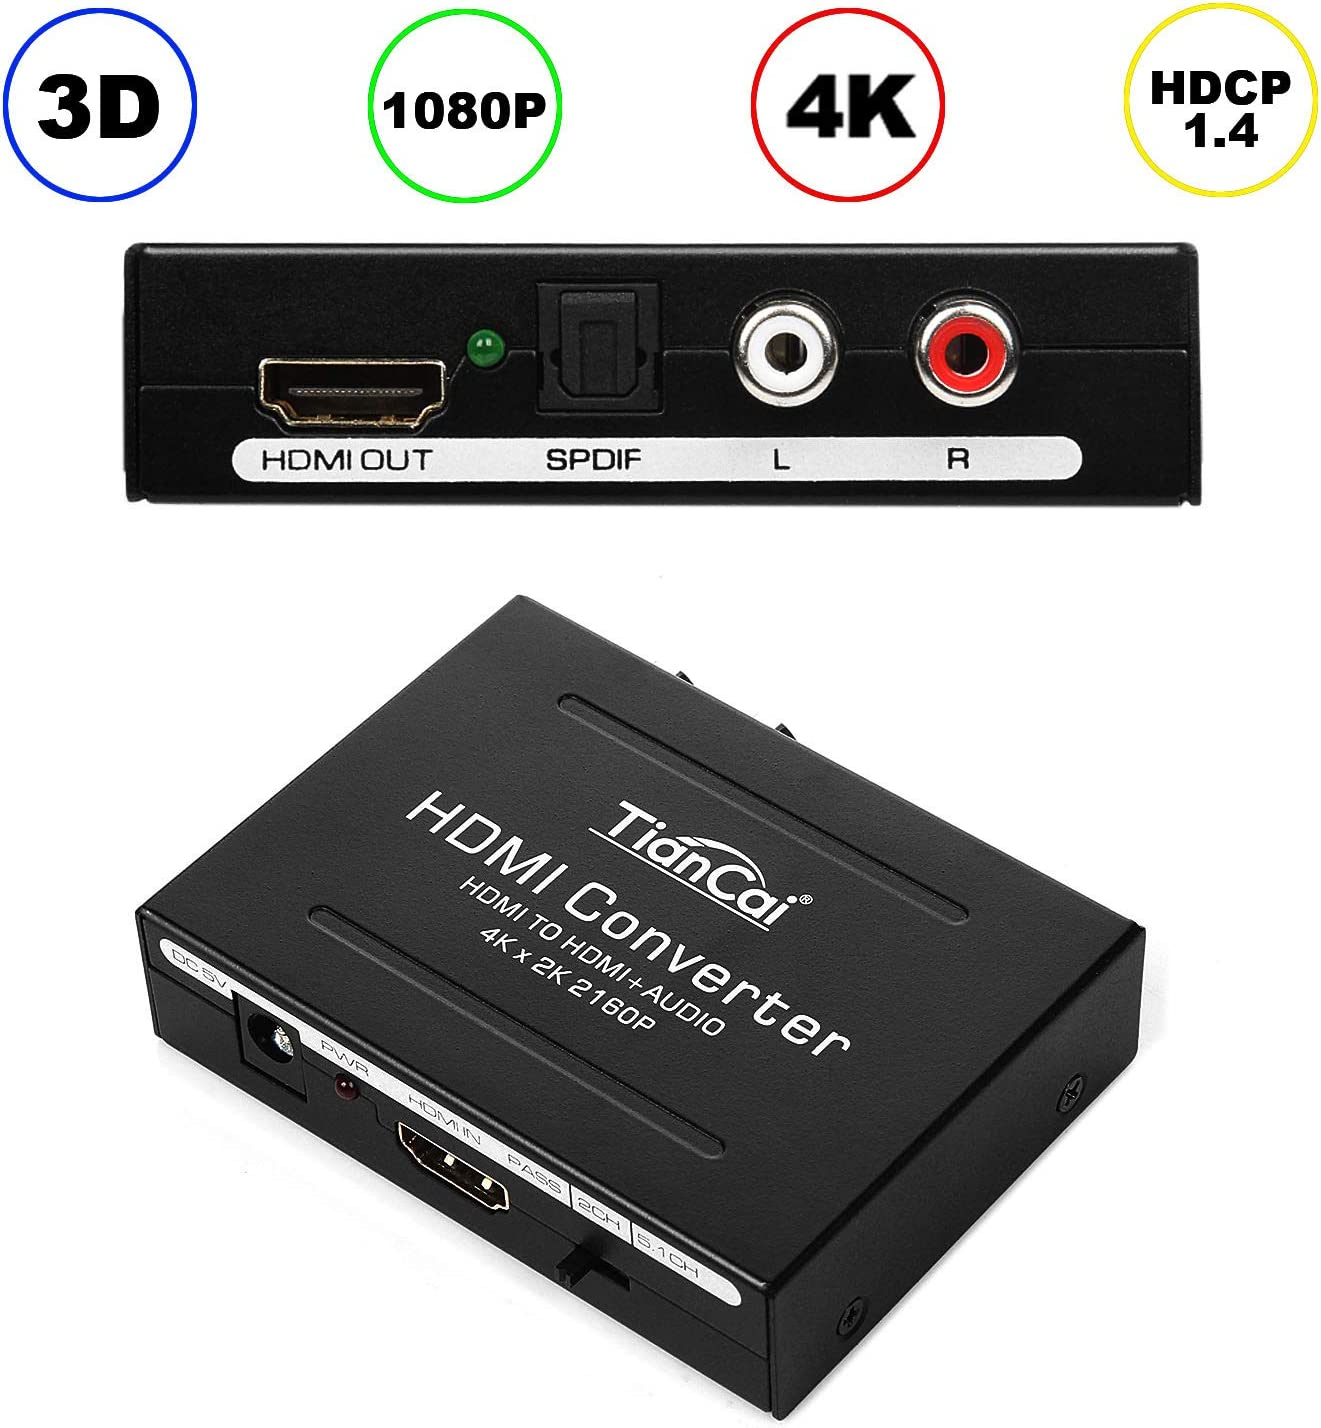 HDMI Audio Extractor 4K, Tiancai HDMI to HDMI + RCA R/L or Optical SPDIF Converter, Compatible with Chromecast Fire Stick Blu-Ray Player PS4 Speaker Amplifier Soundbar Headphone, Support 3D CEC